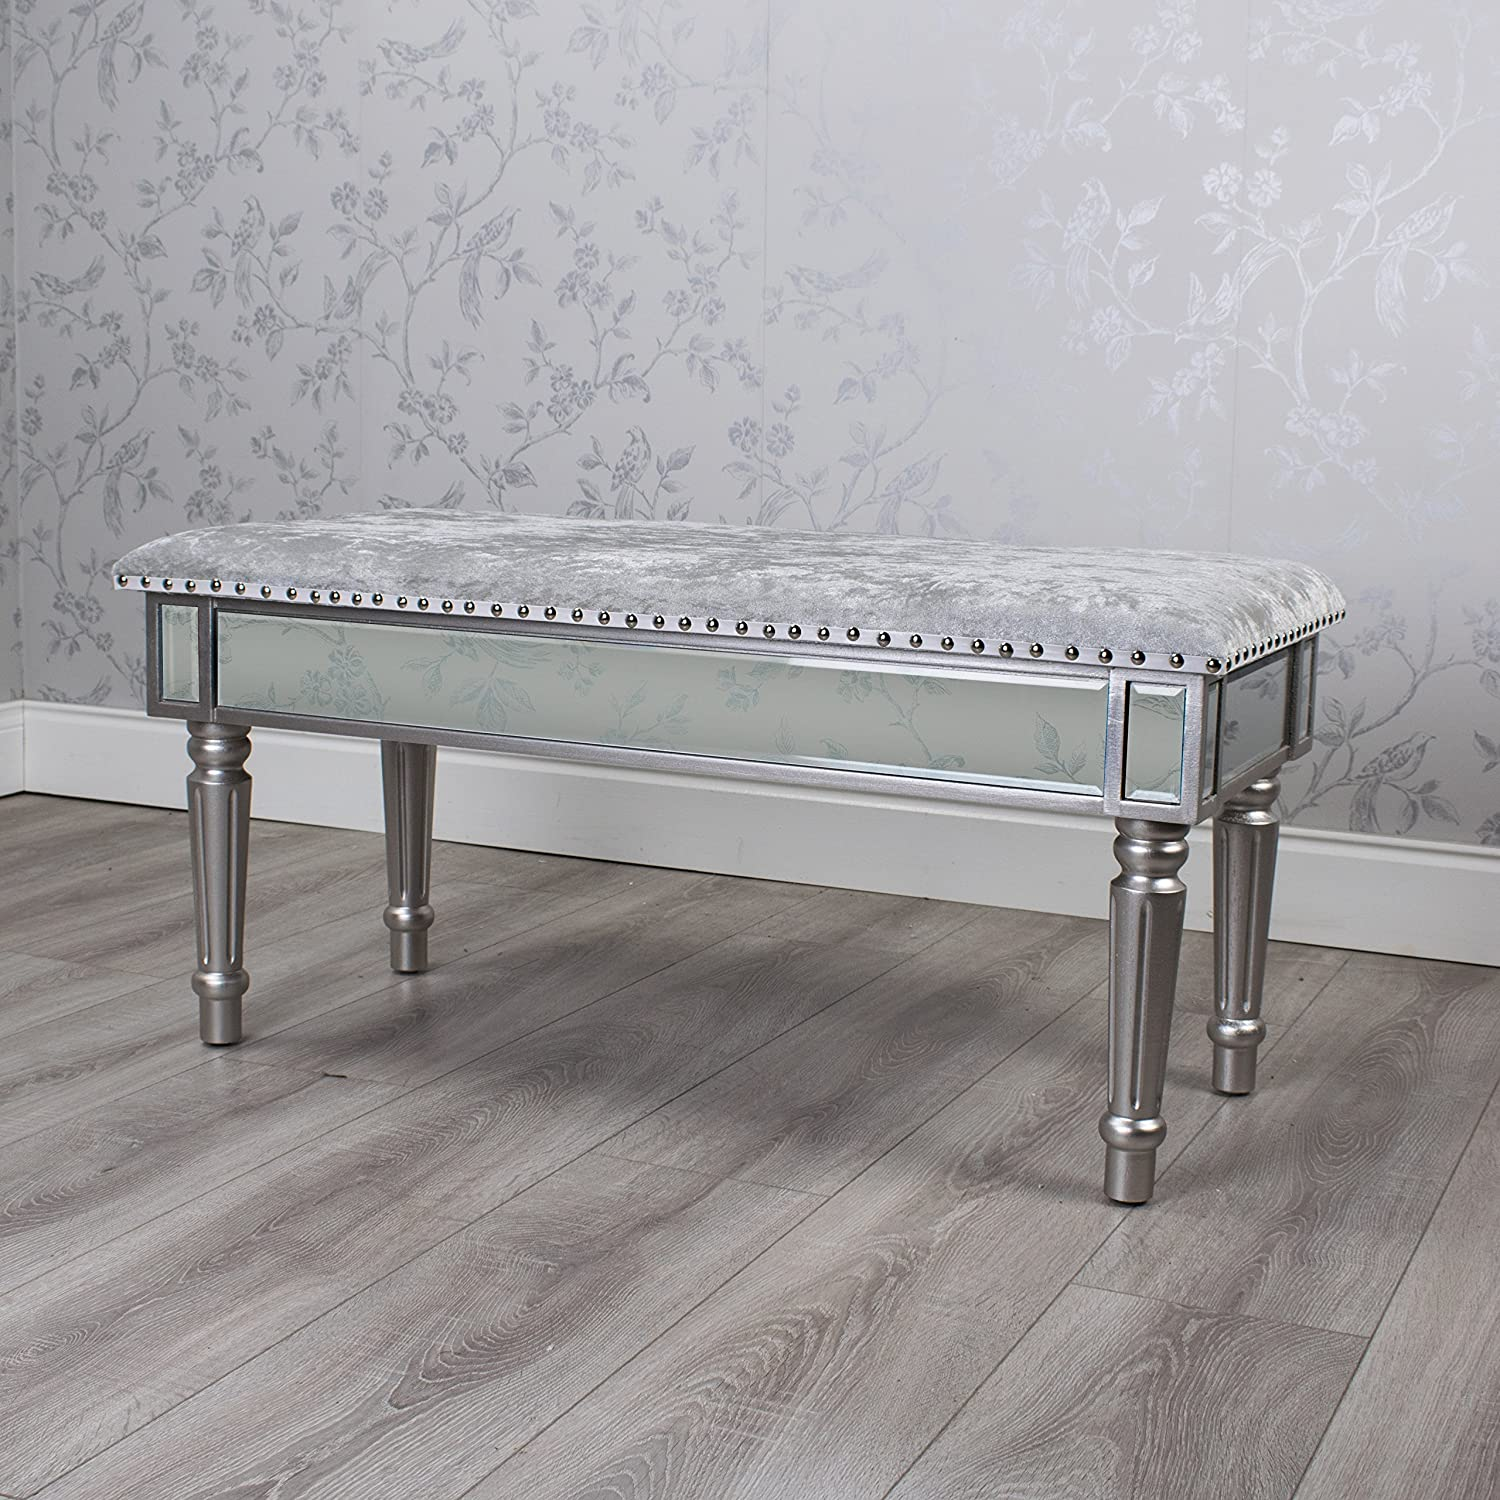 DOWNTON INTERIORS ANTIQUE SILVER MIRRORED GLASS BENCH WITH FABRIC SEAT (GB054) **FULL RANGE OF MATCHING CURVED REFLECTIONS FURNITURE IS AVAILABLE**